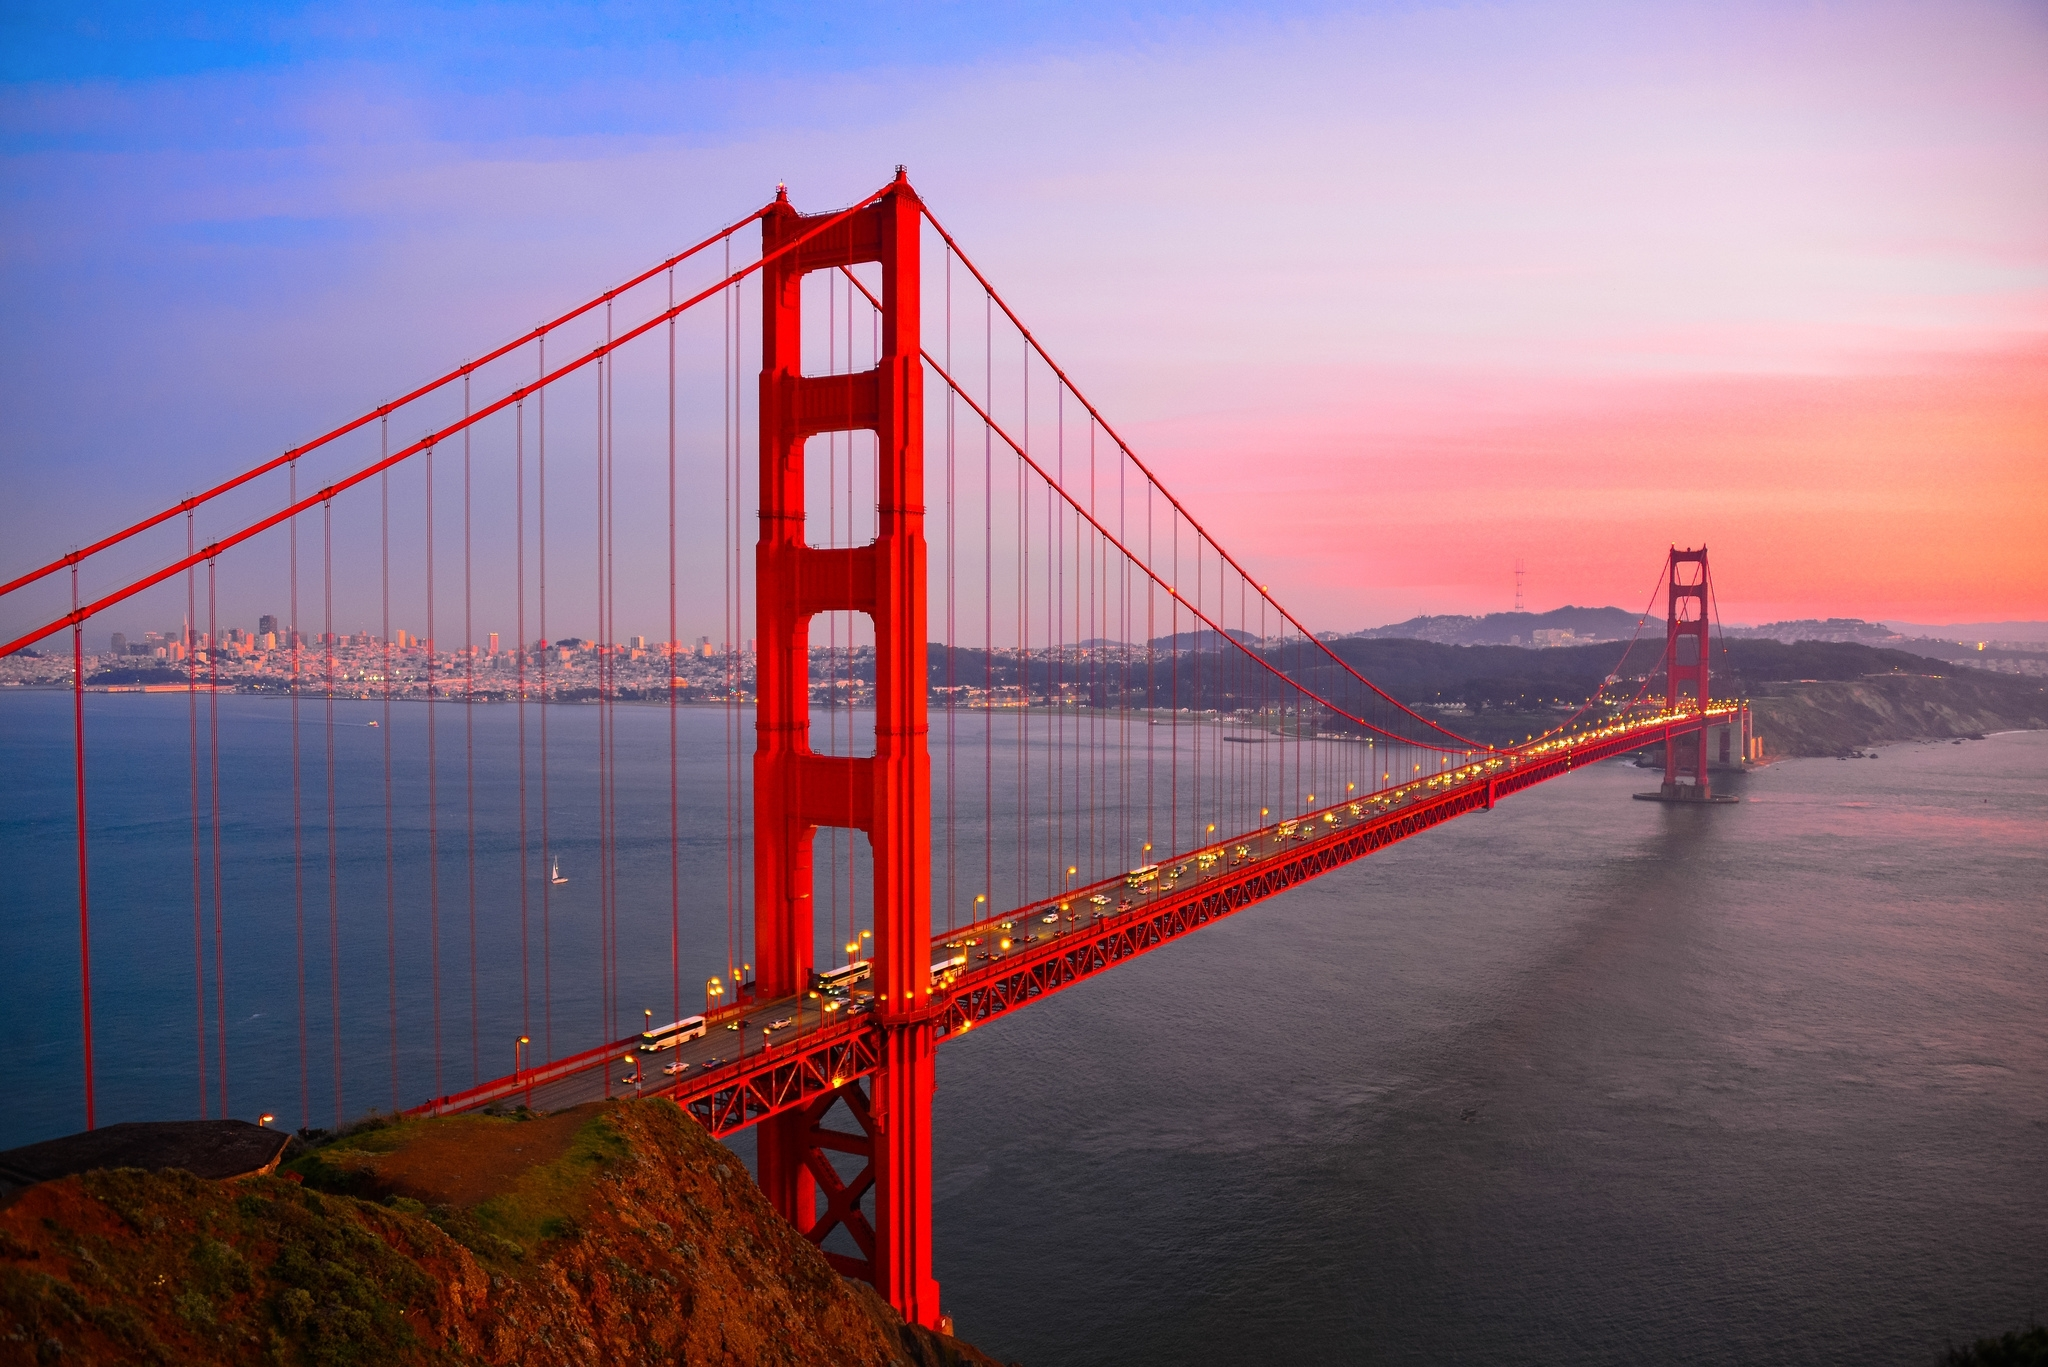 182 golden gate hd wallpapers | background images - wallpaper abyss